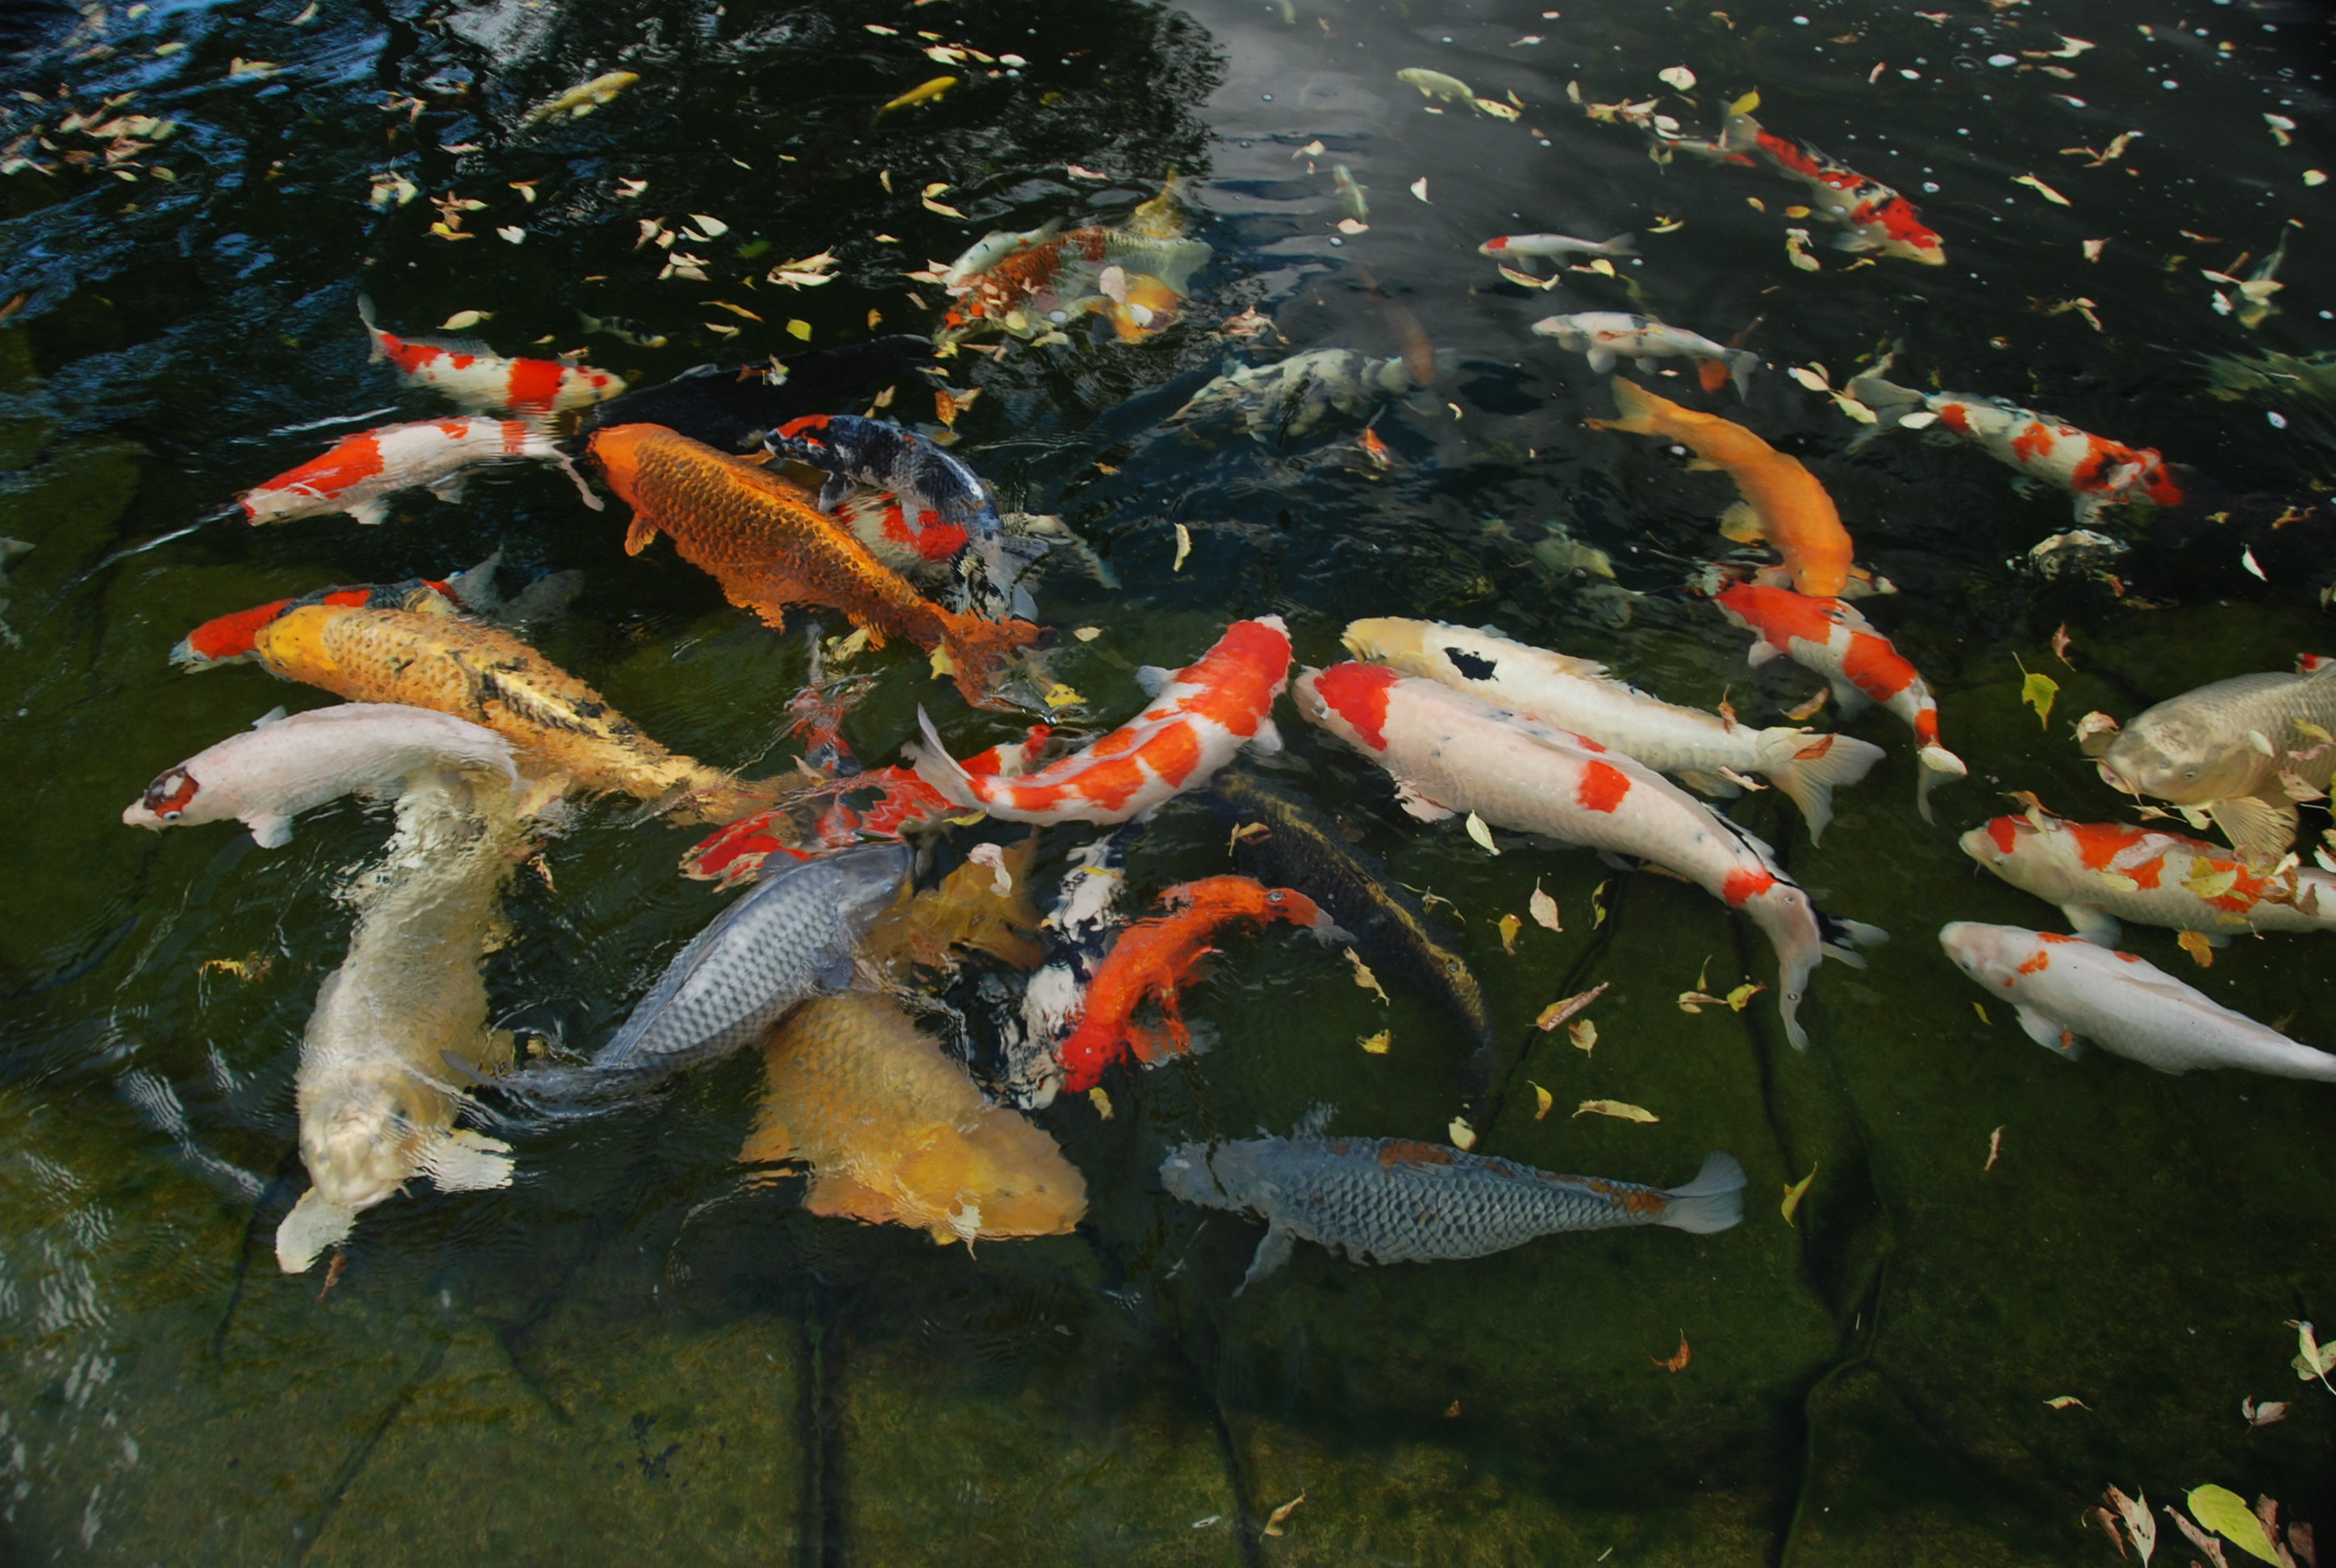 Koi acres imported japanese koi online shopping for koi for Koi carp fish pond